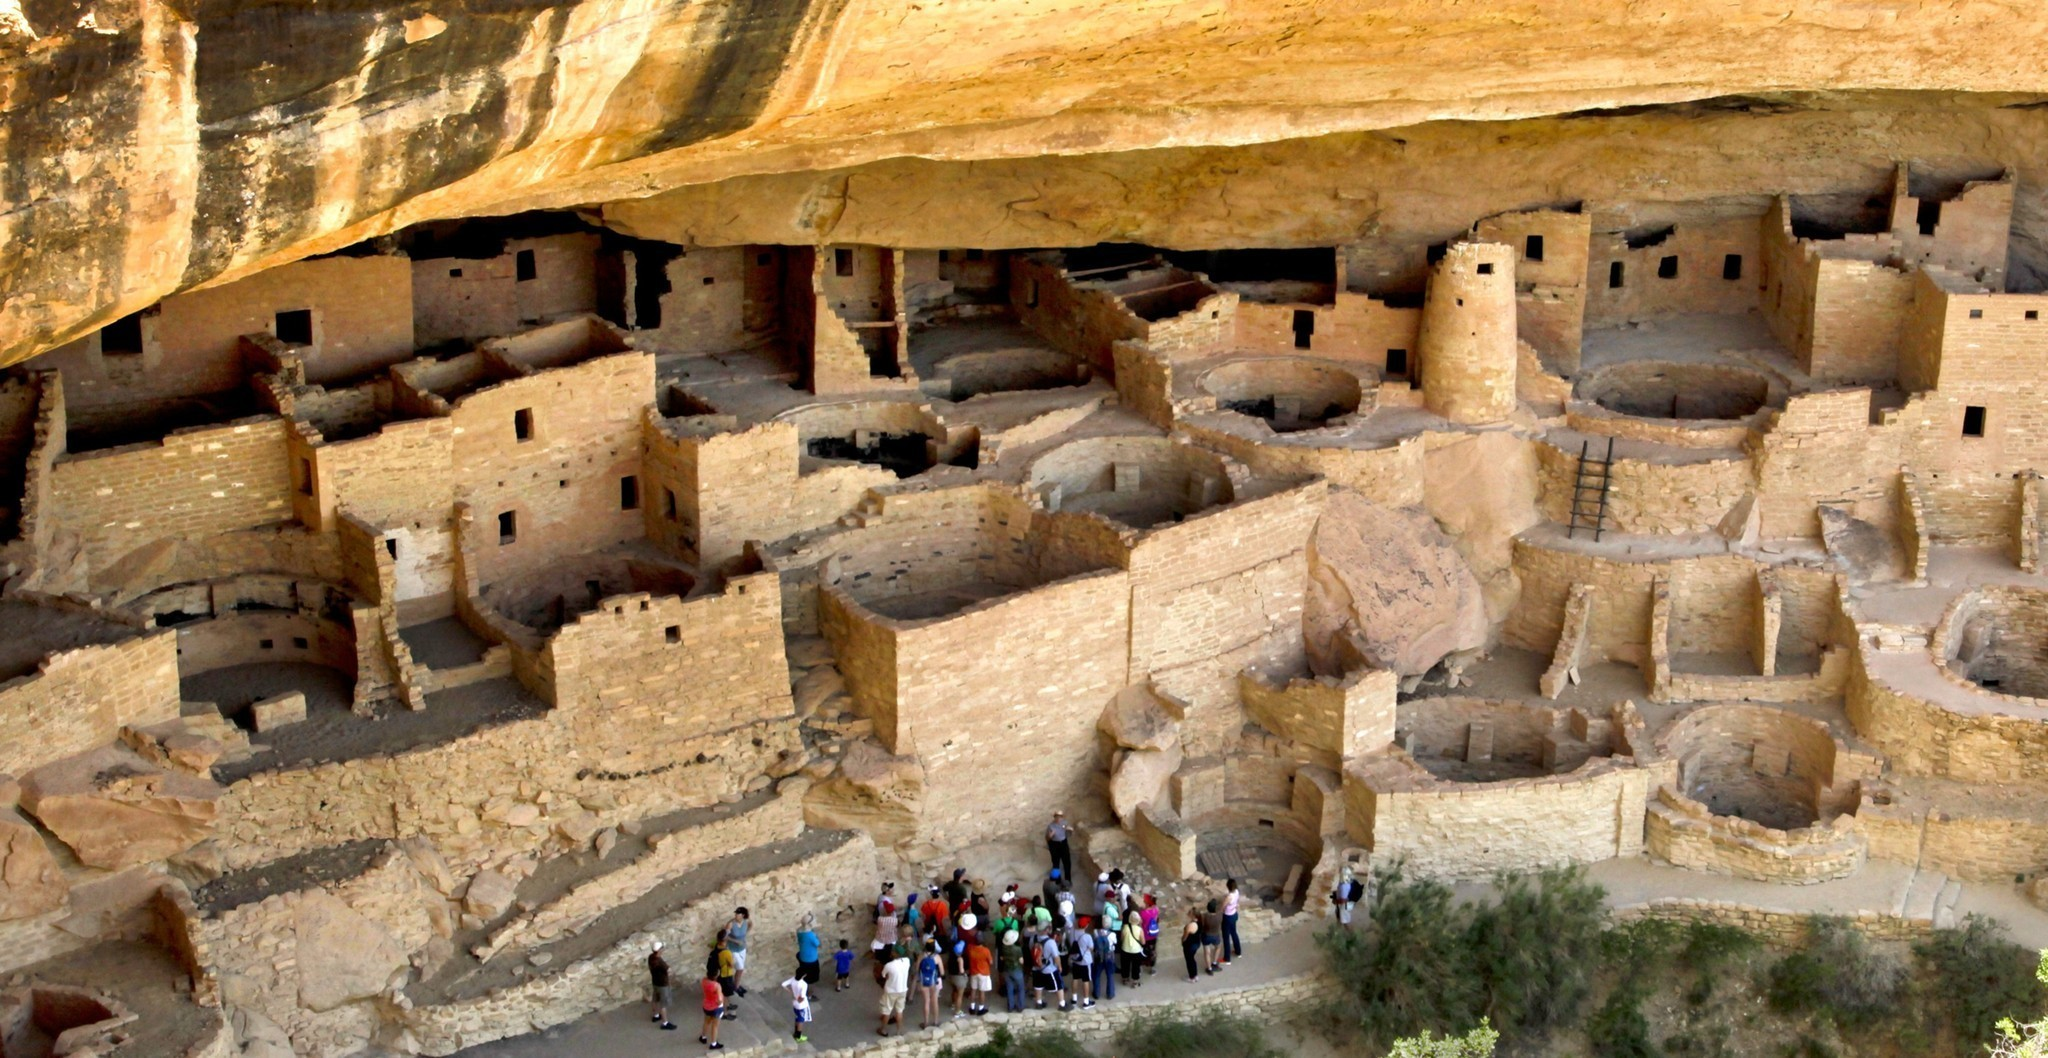 a look at the main attraction of mesa verde national park Exploring the cliff dwellings at mesa verde national park  to where most of the main attractions were  i hadnt heard of mesa verde, but man does it look cool.